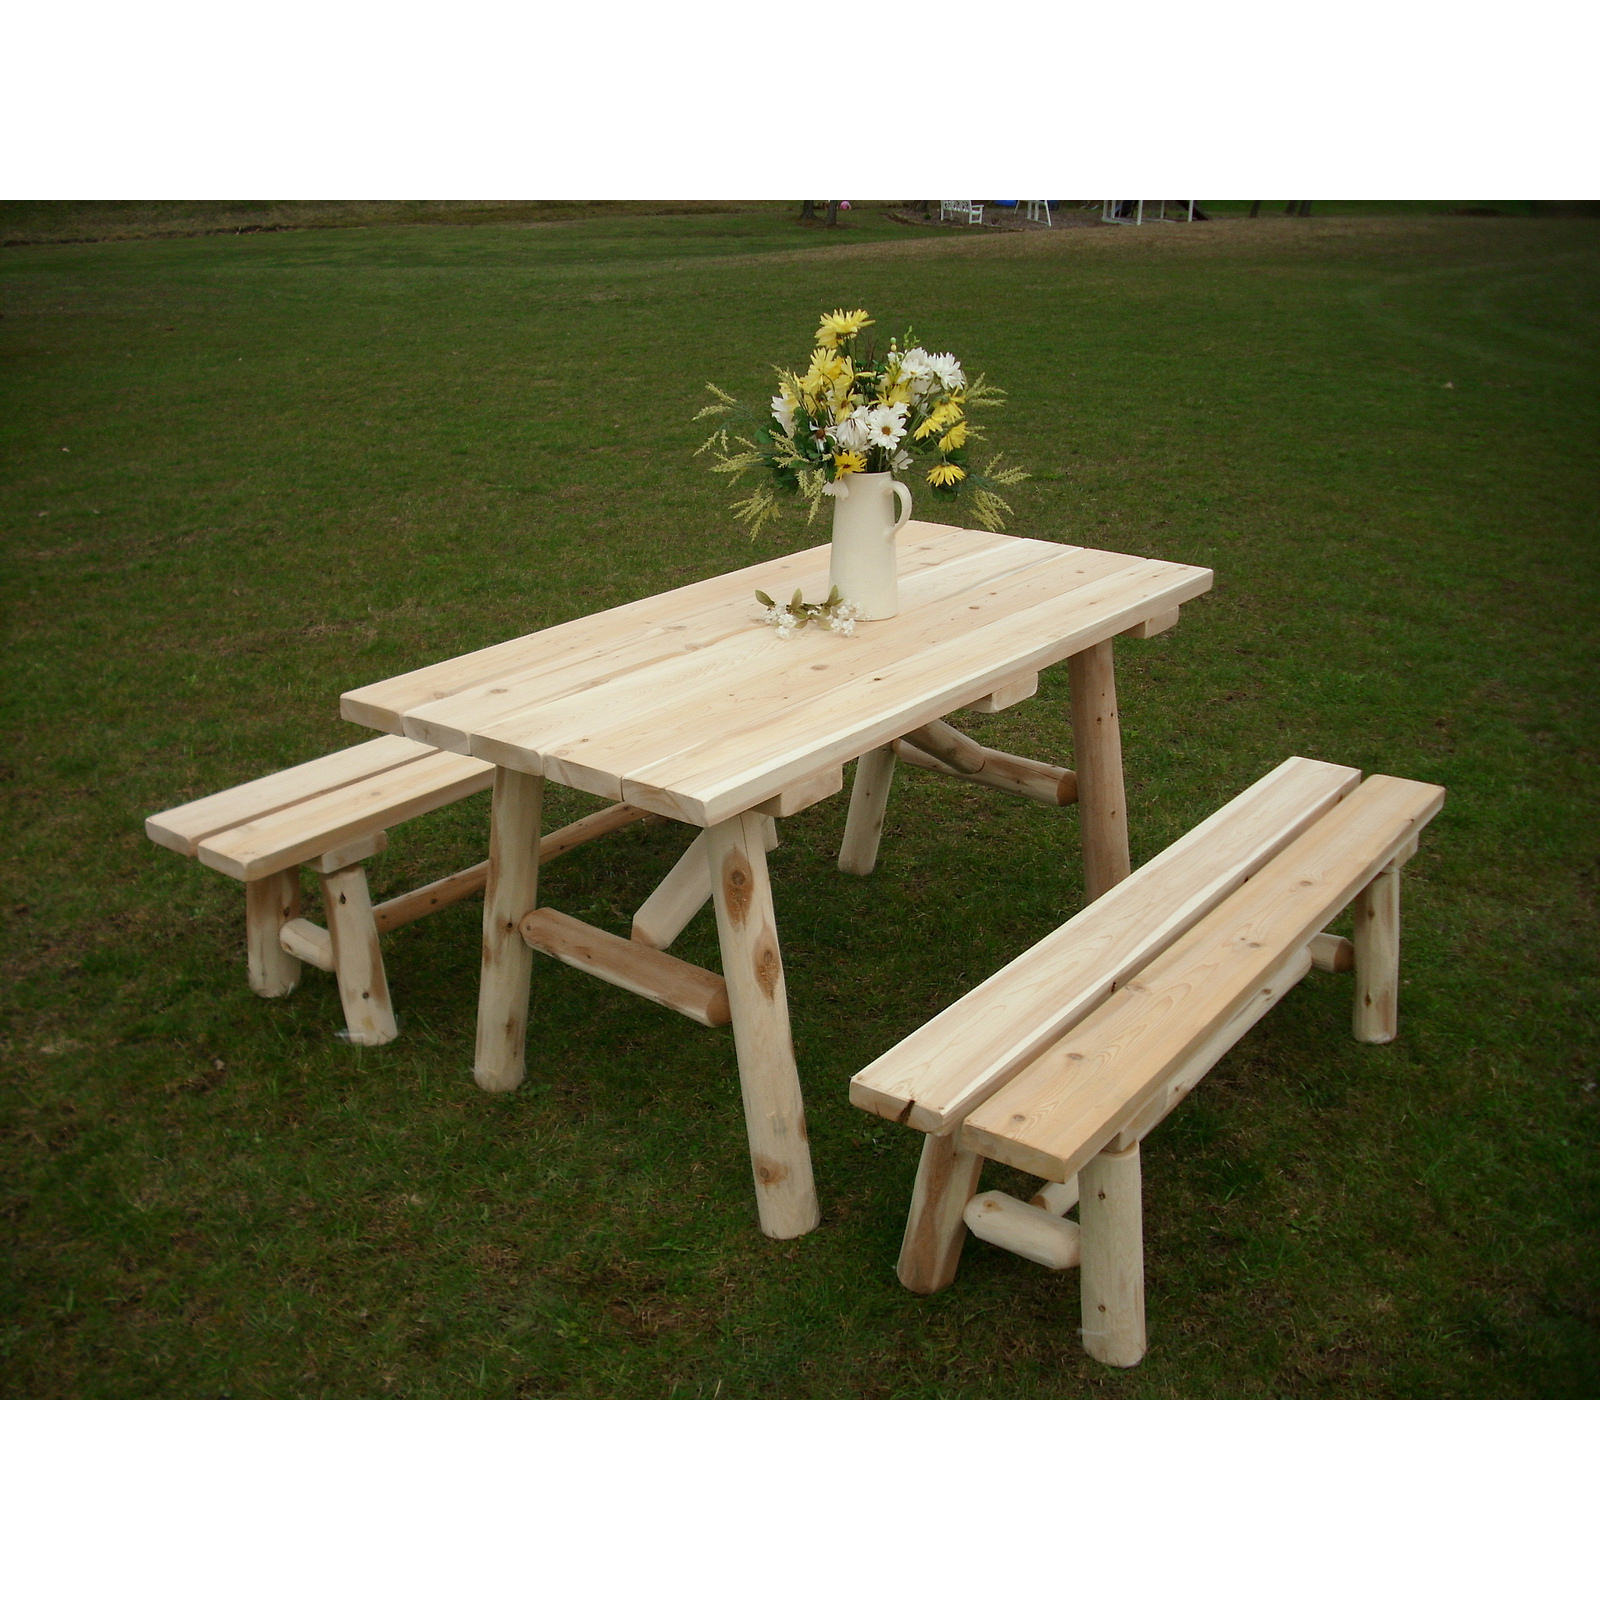 White Cedar Log 8 Foot Traditional Picnic Table With Detached Benches Free Shipping Today 13261311